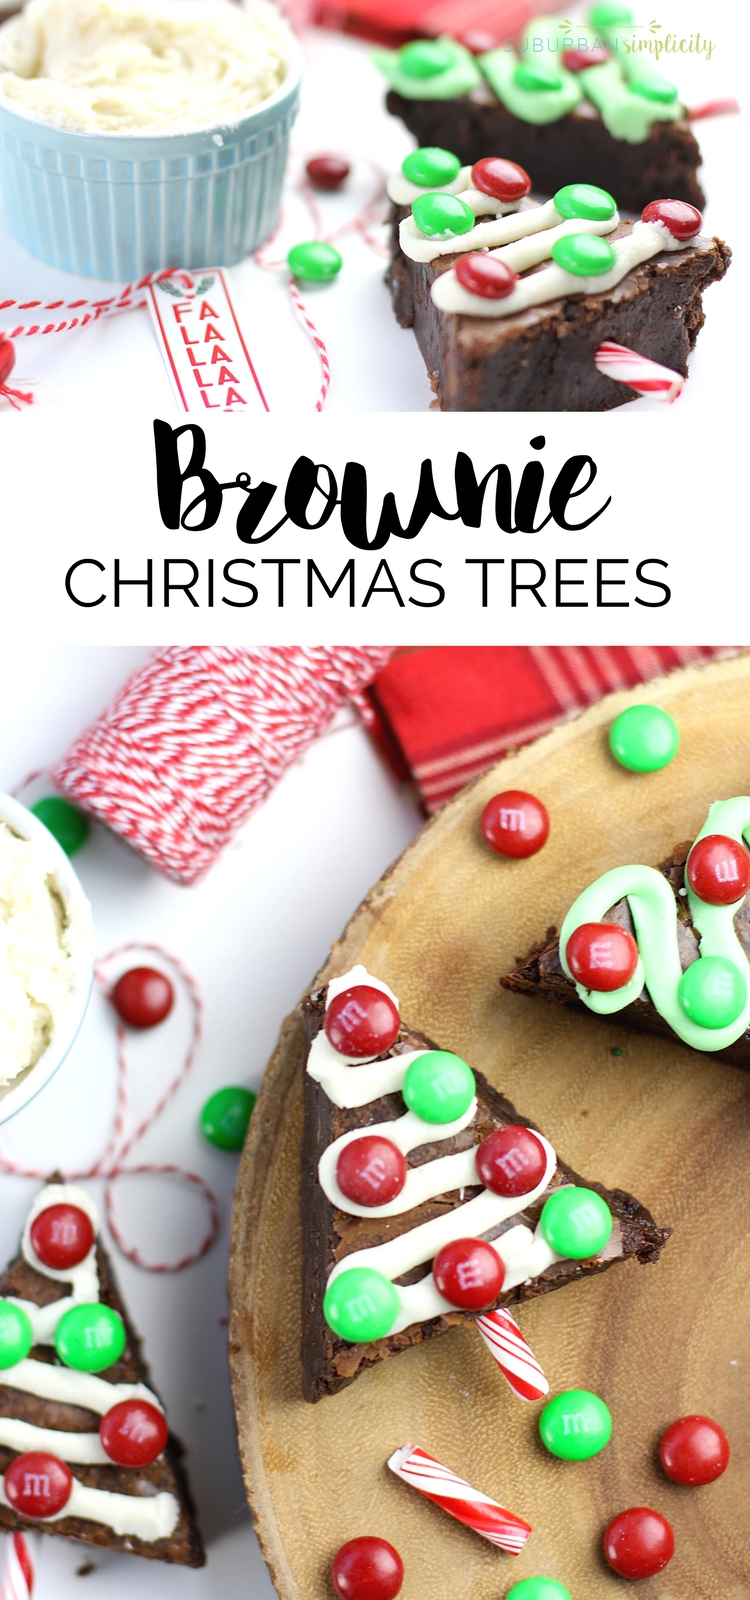 Make your holidays extra festive with these fudgy M&M'S Brownie Christmas Trees. Delicious and easy to make, this holiday dessert is a crowd pleaser! | Suburban Simplicity #brownies #Christmas